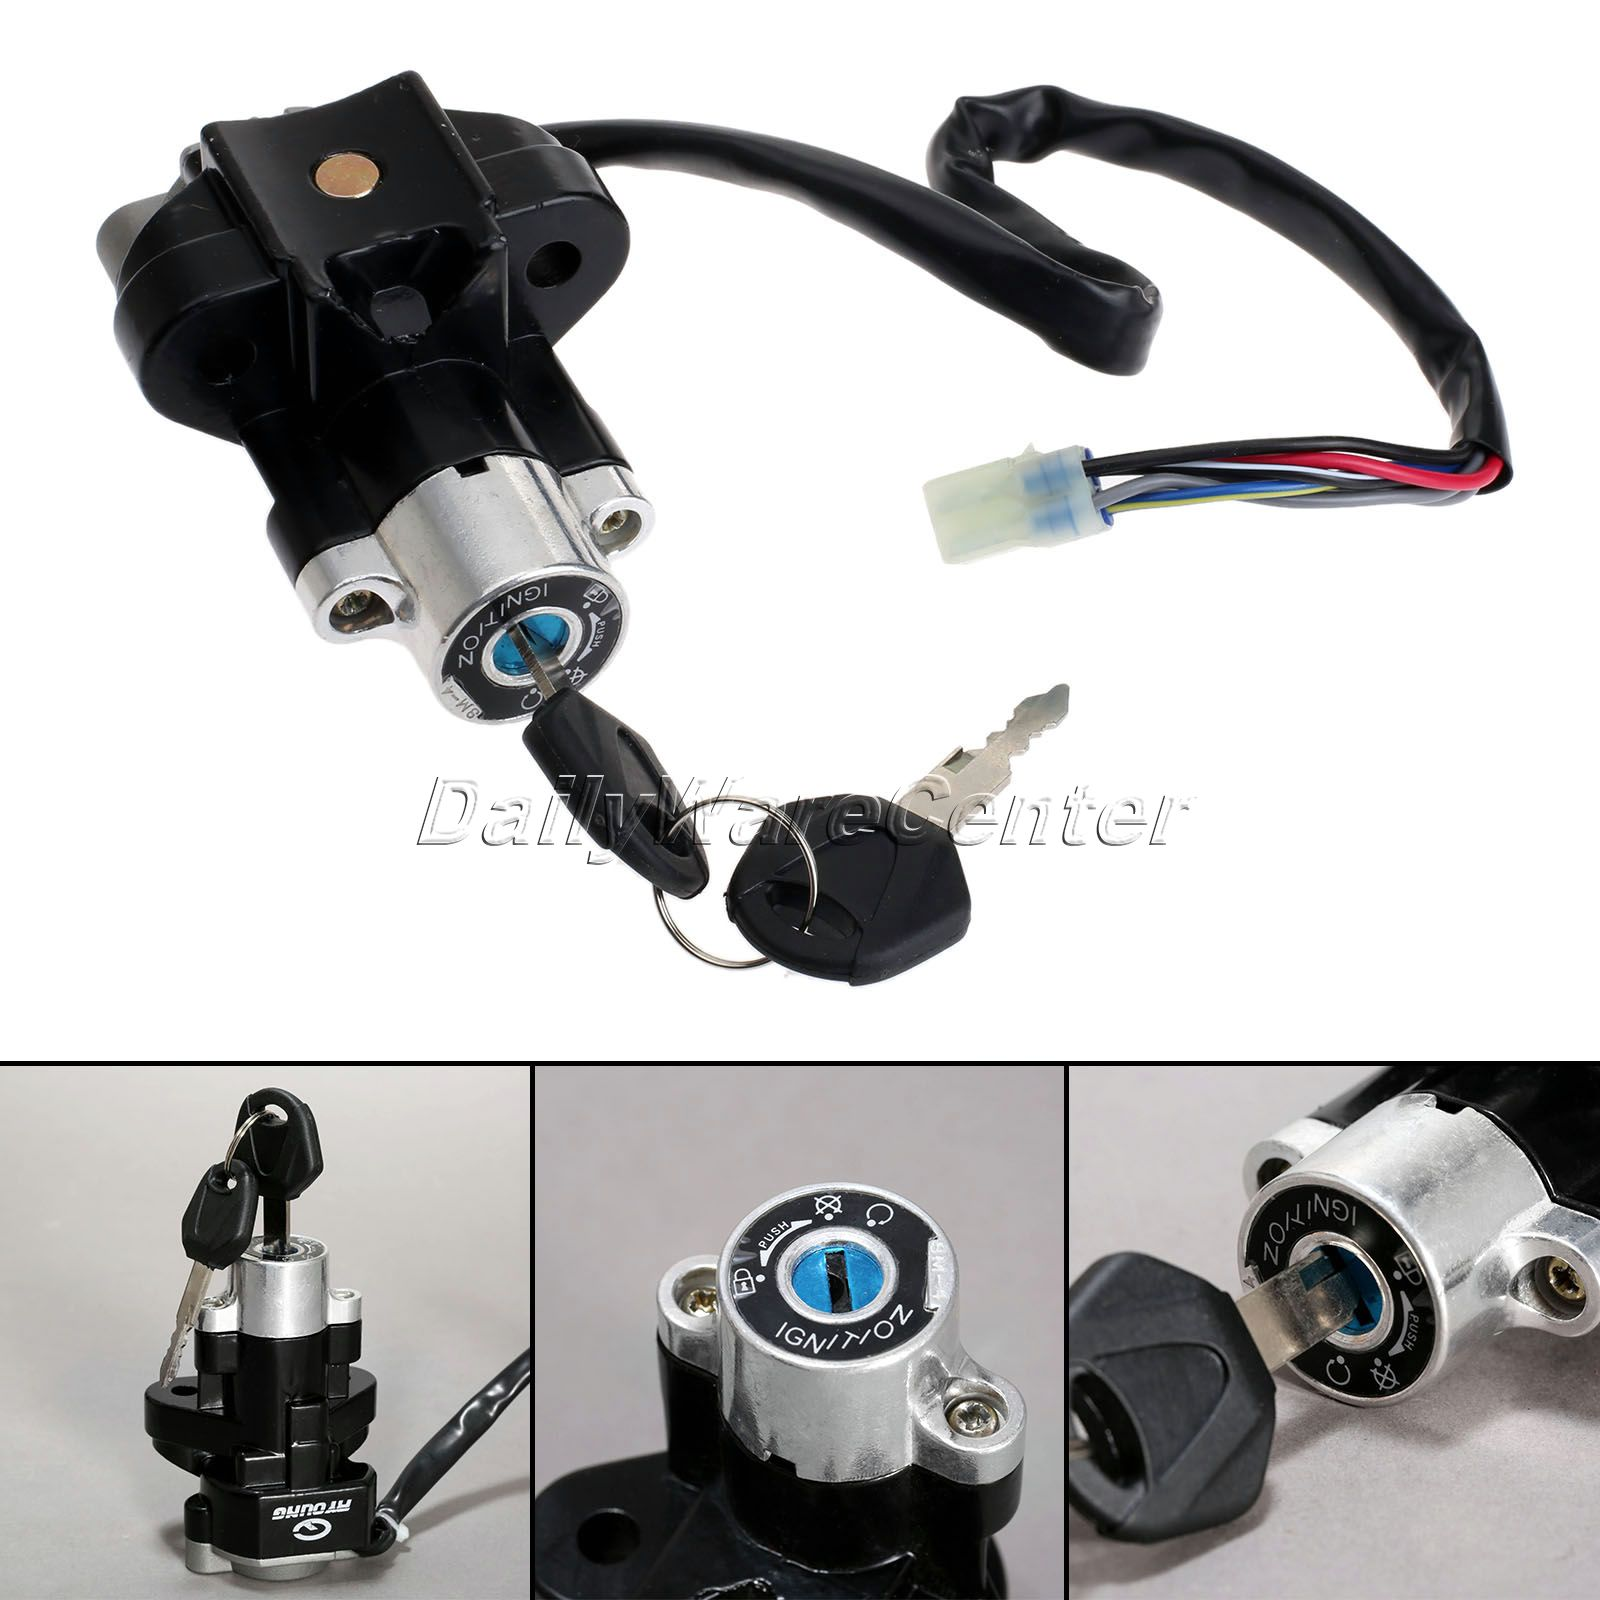 Motorcycle Ignition Switch Lock with Keys Aluminum for Suzuki GSXR 600 750 GSX-R600 GSX-R750 Pitbike Scooter Motorbike Parts cdi image